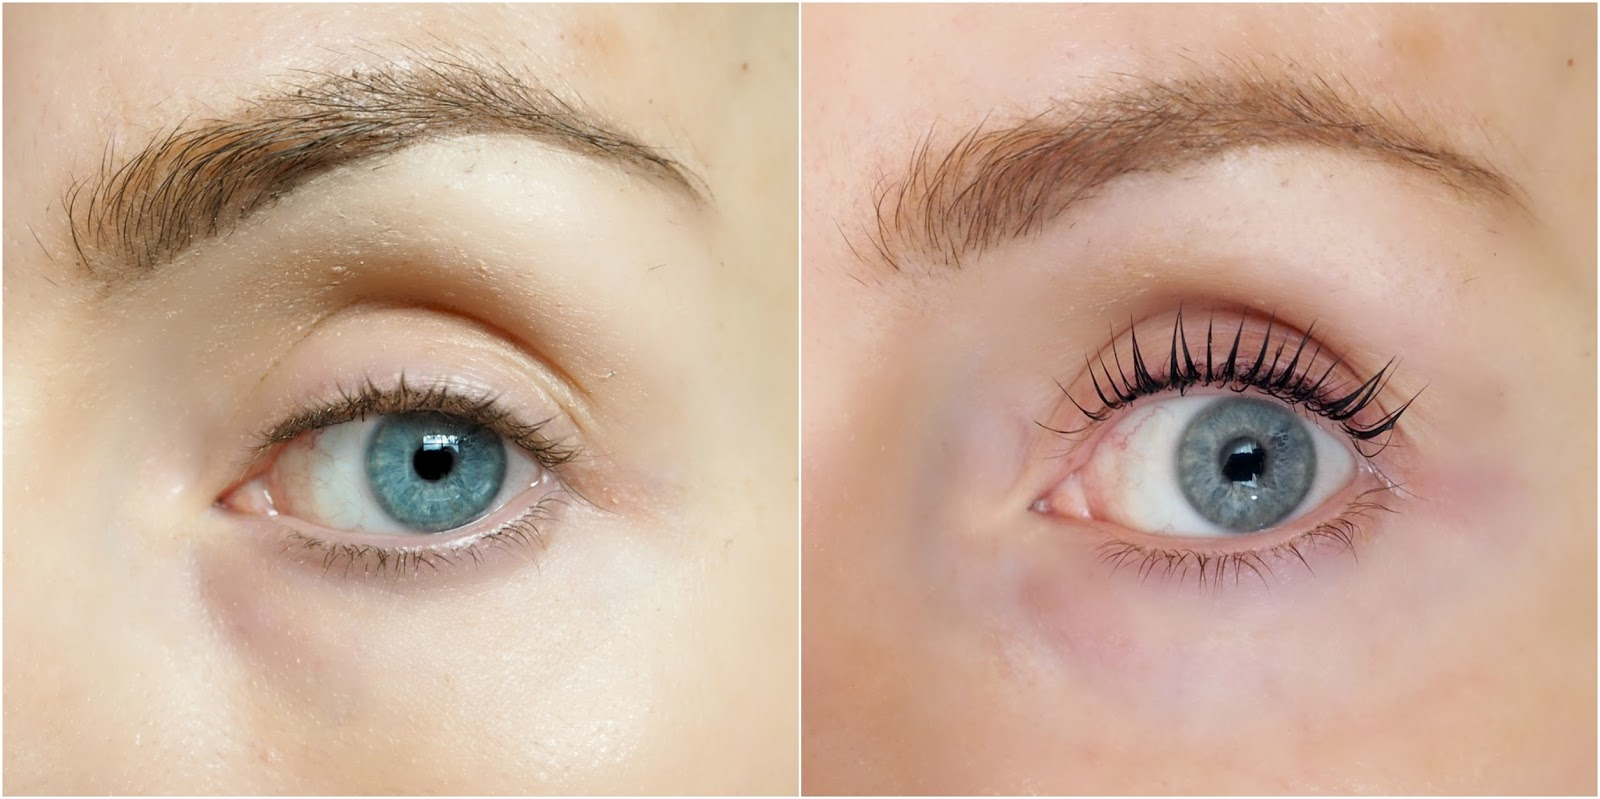 Before and after pics of LVL lash treatment at Jk One Beauty, Crawley